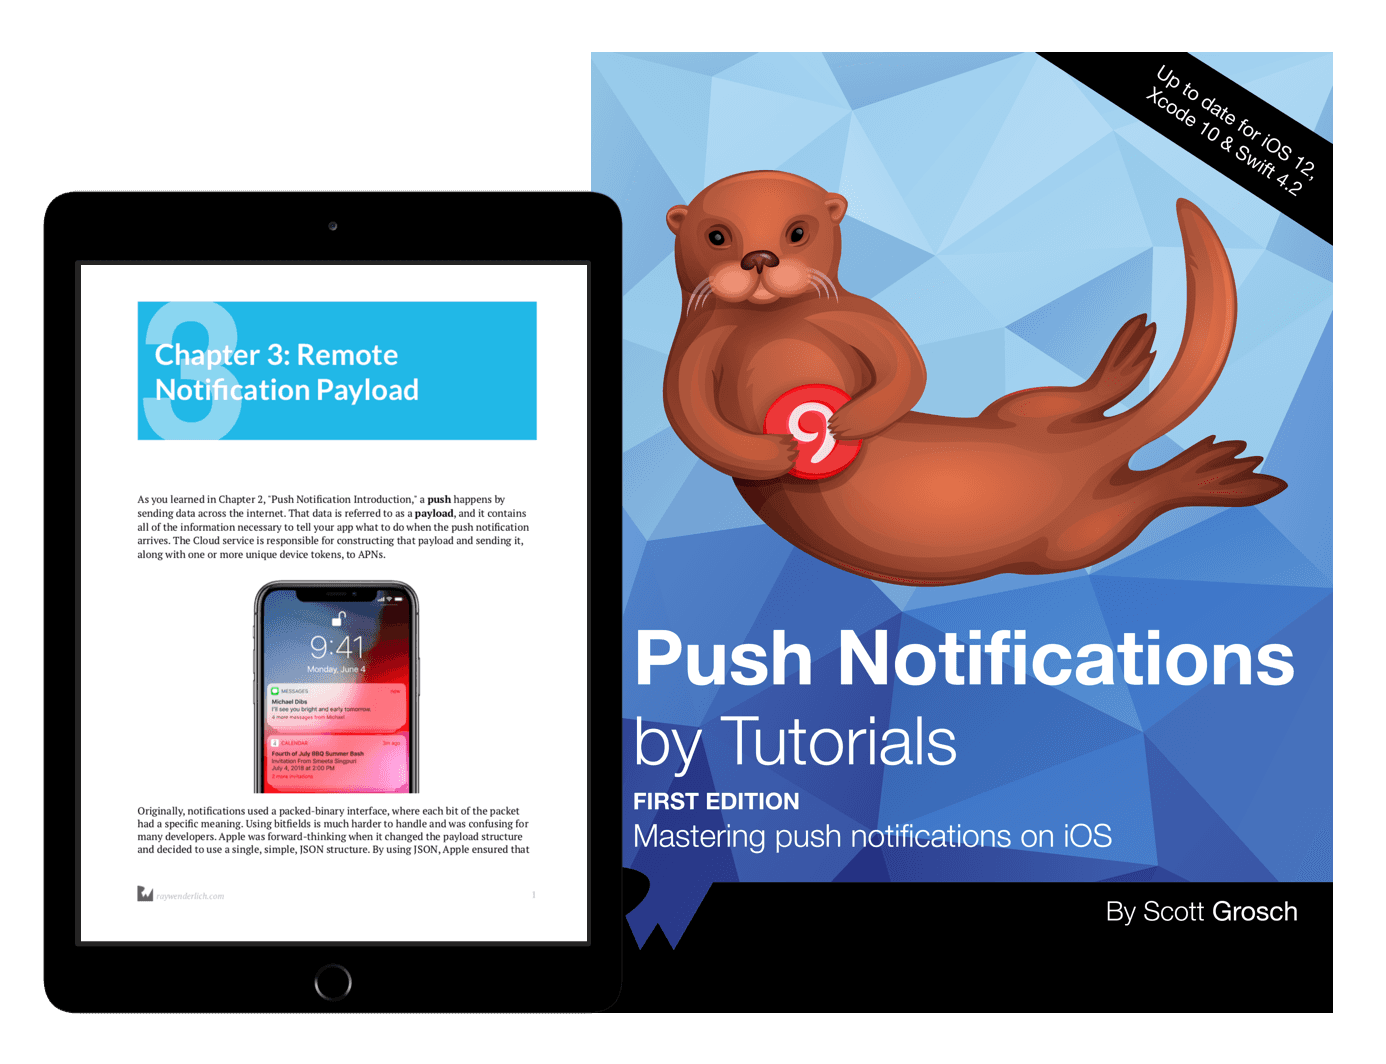 Push Notifications by Tutorials